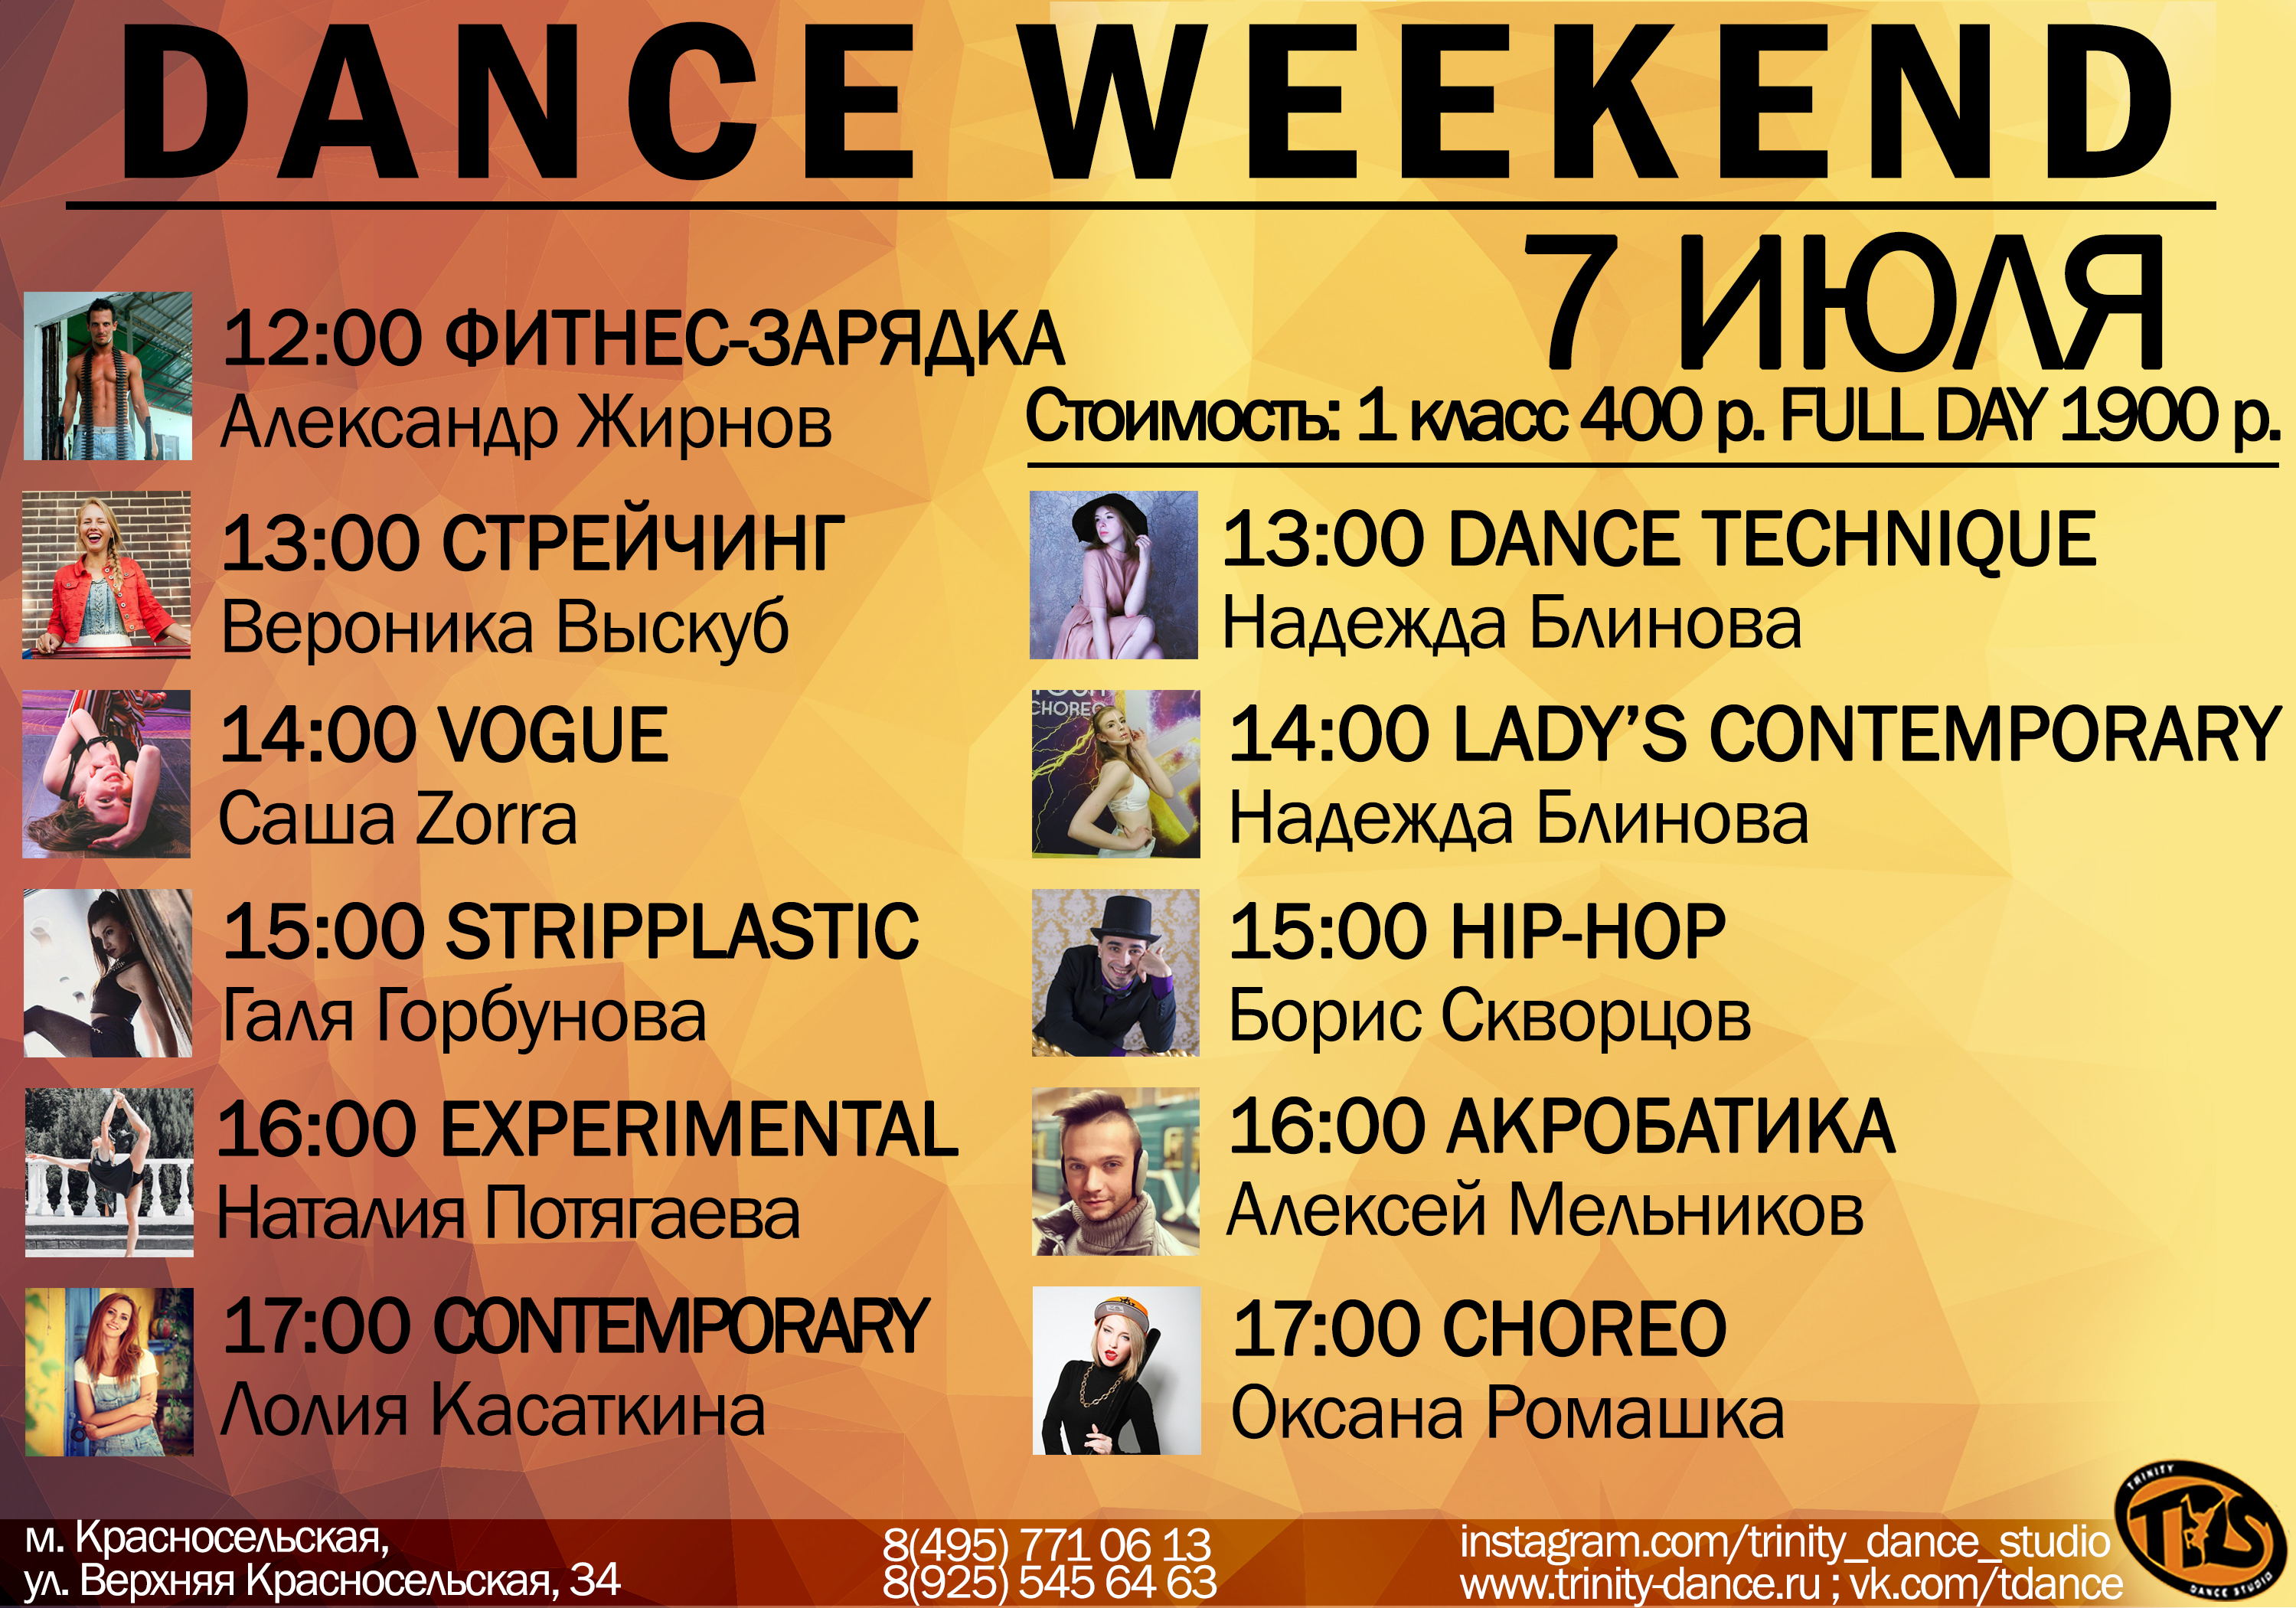 DANCE WEEKEND 7.07.18!